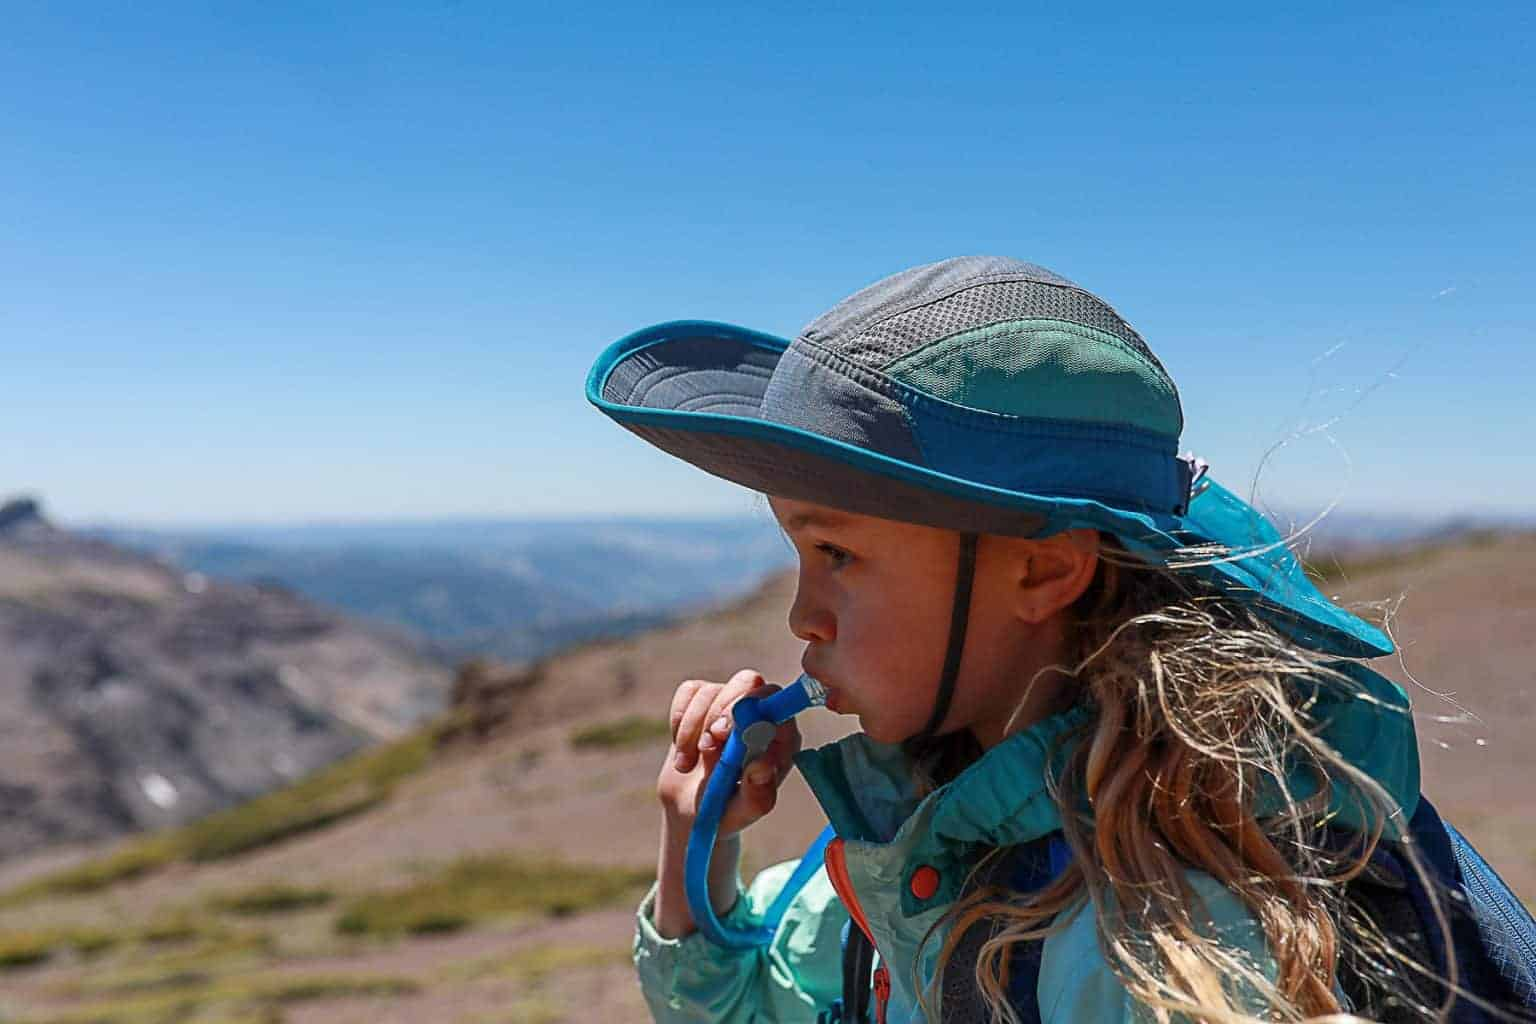 First Aid Sun Safety Hydration Blisters - how to prevent dehydration while hiking